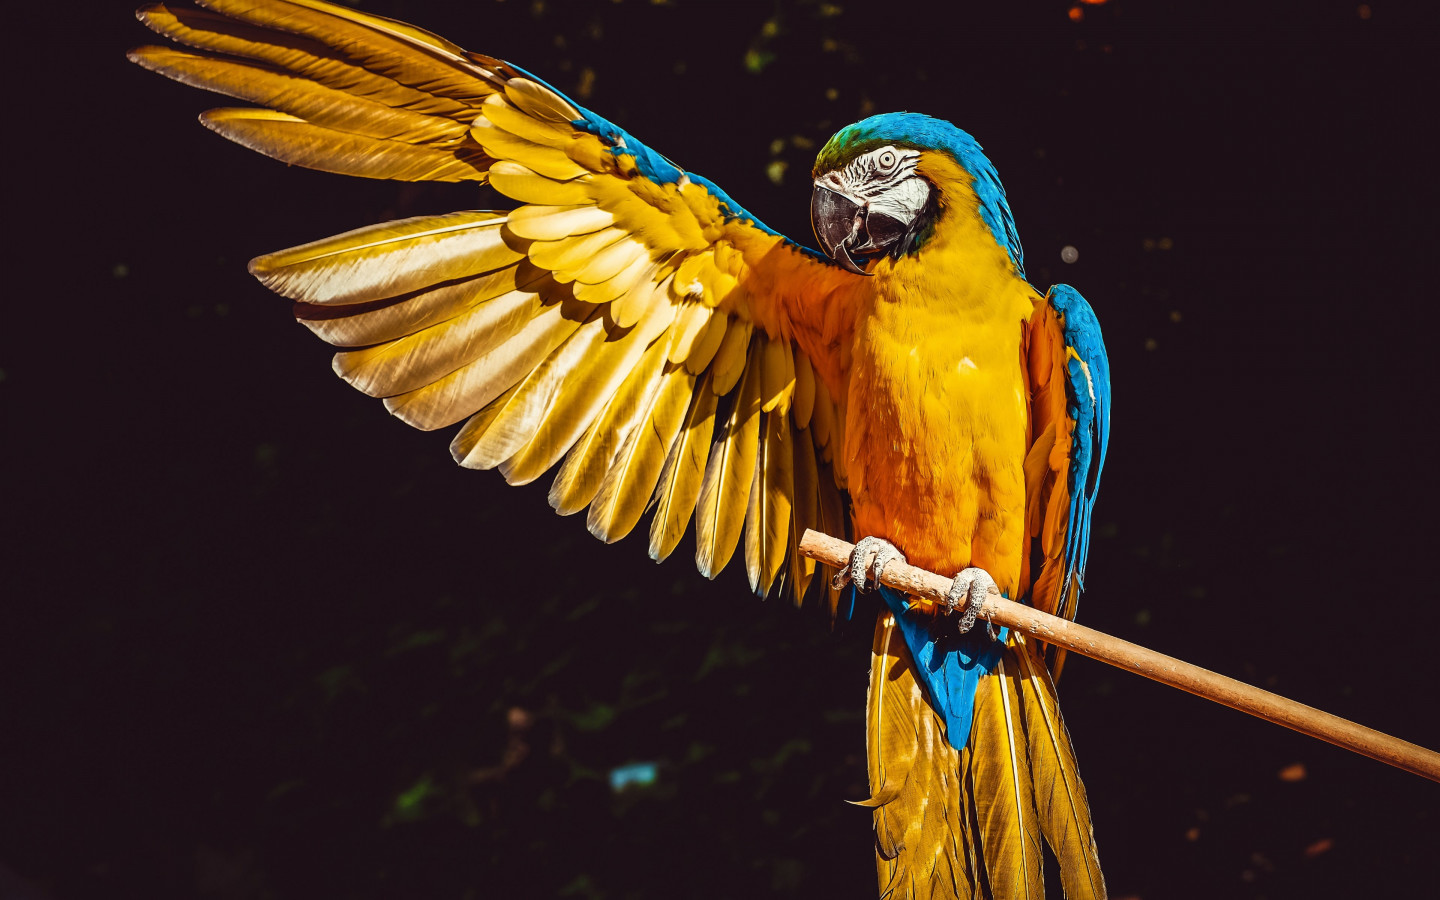 Blue and yellow macaw wallpaper 1440x900